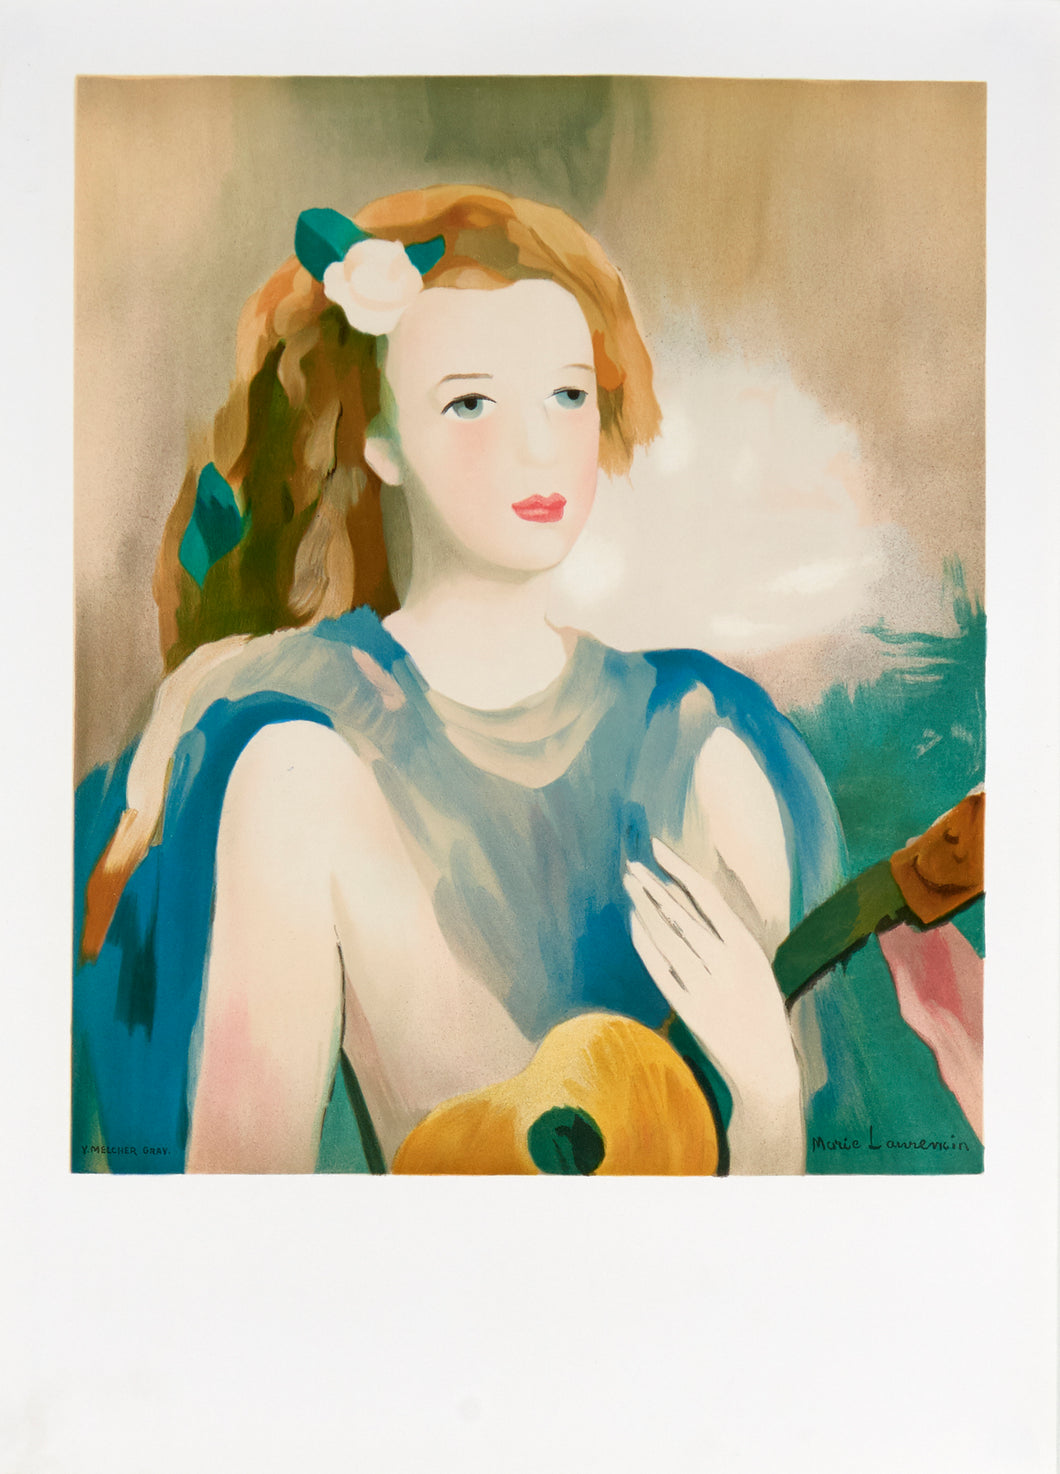 woman posing with a guitar by Marie Laurencin 1989